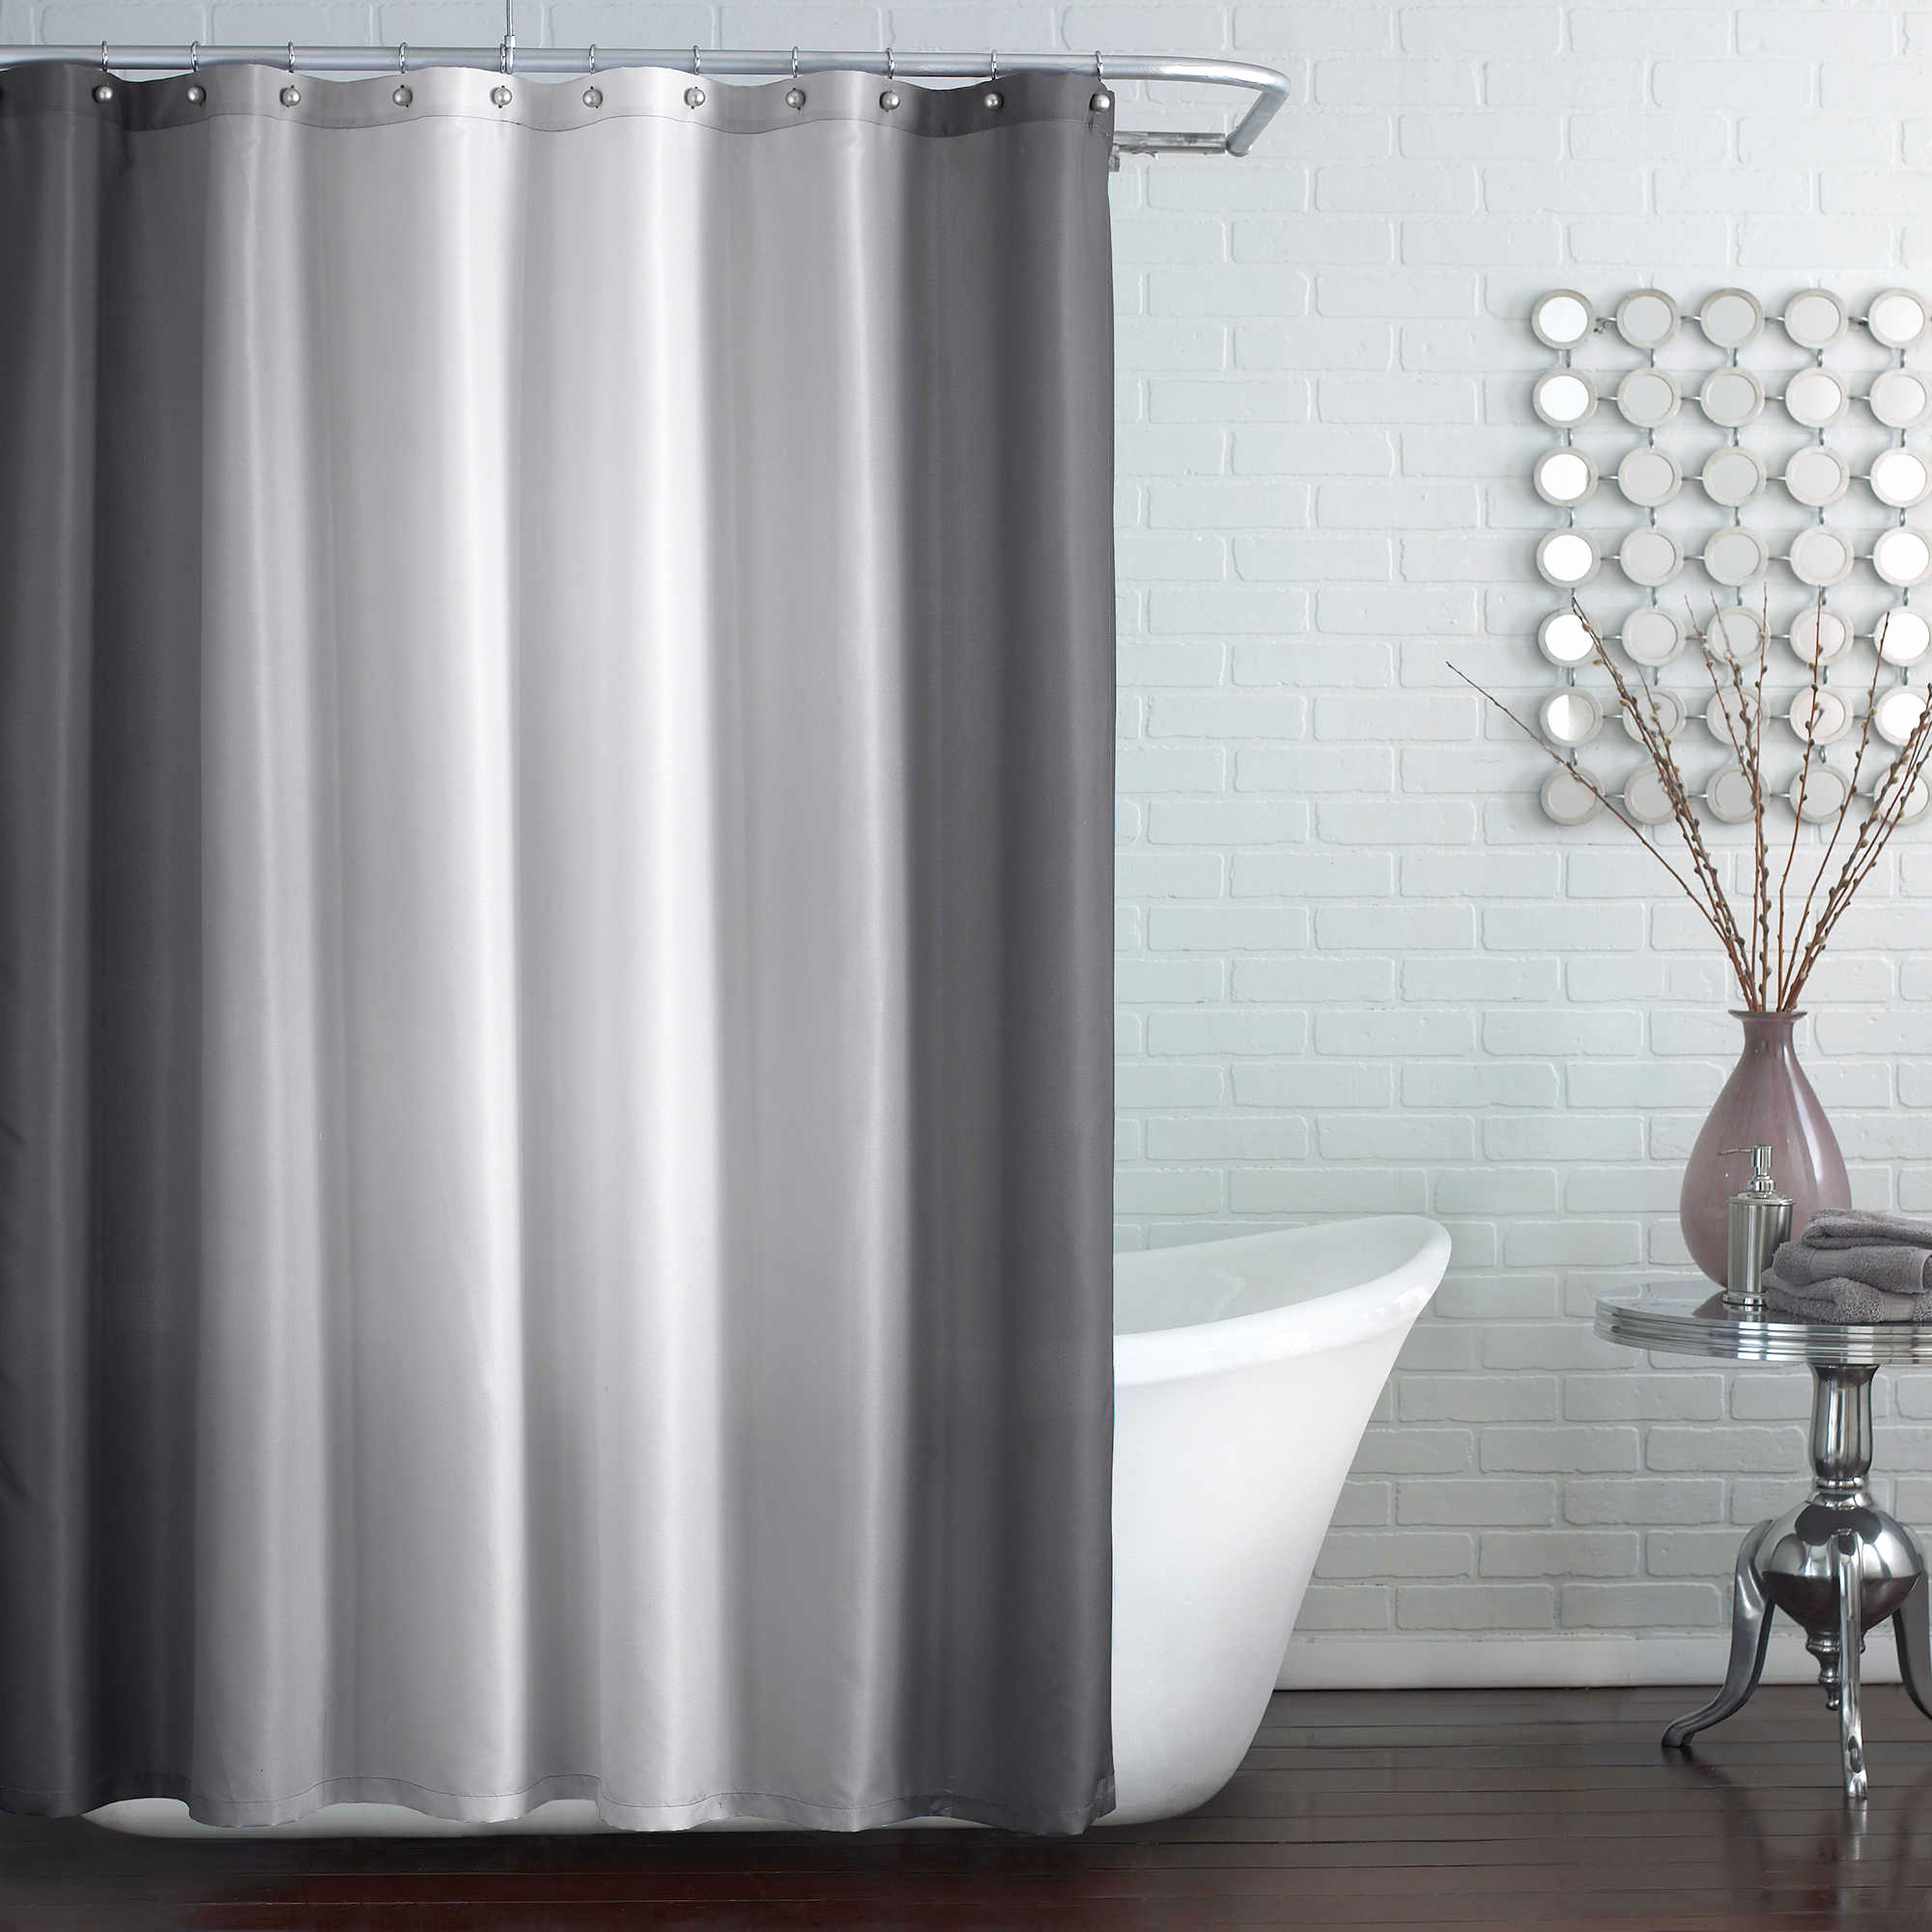 Length Of Stall Shower Curtain • Shower Curtains Ideas